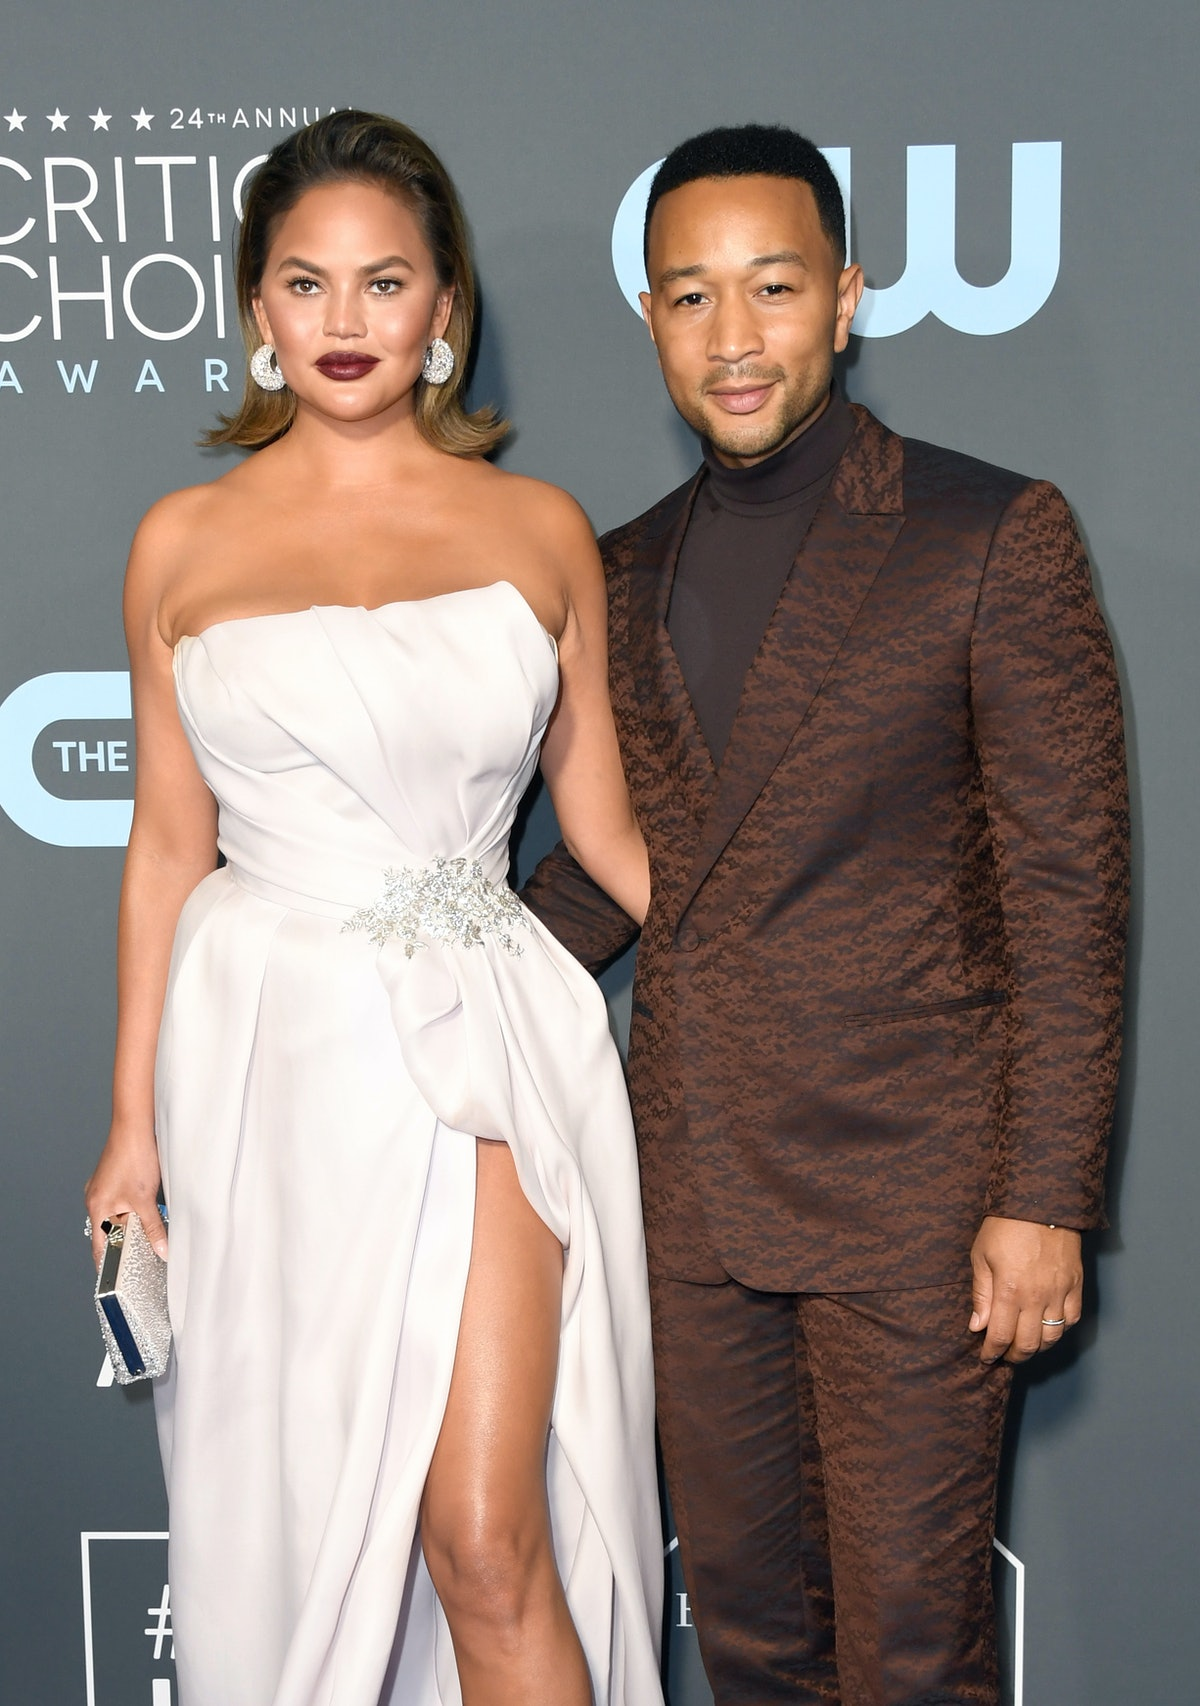 Chrissy Teigen & John Legend's Totino's Tweets Highlight A Hilarious Misunderstanding Between The Couple